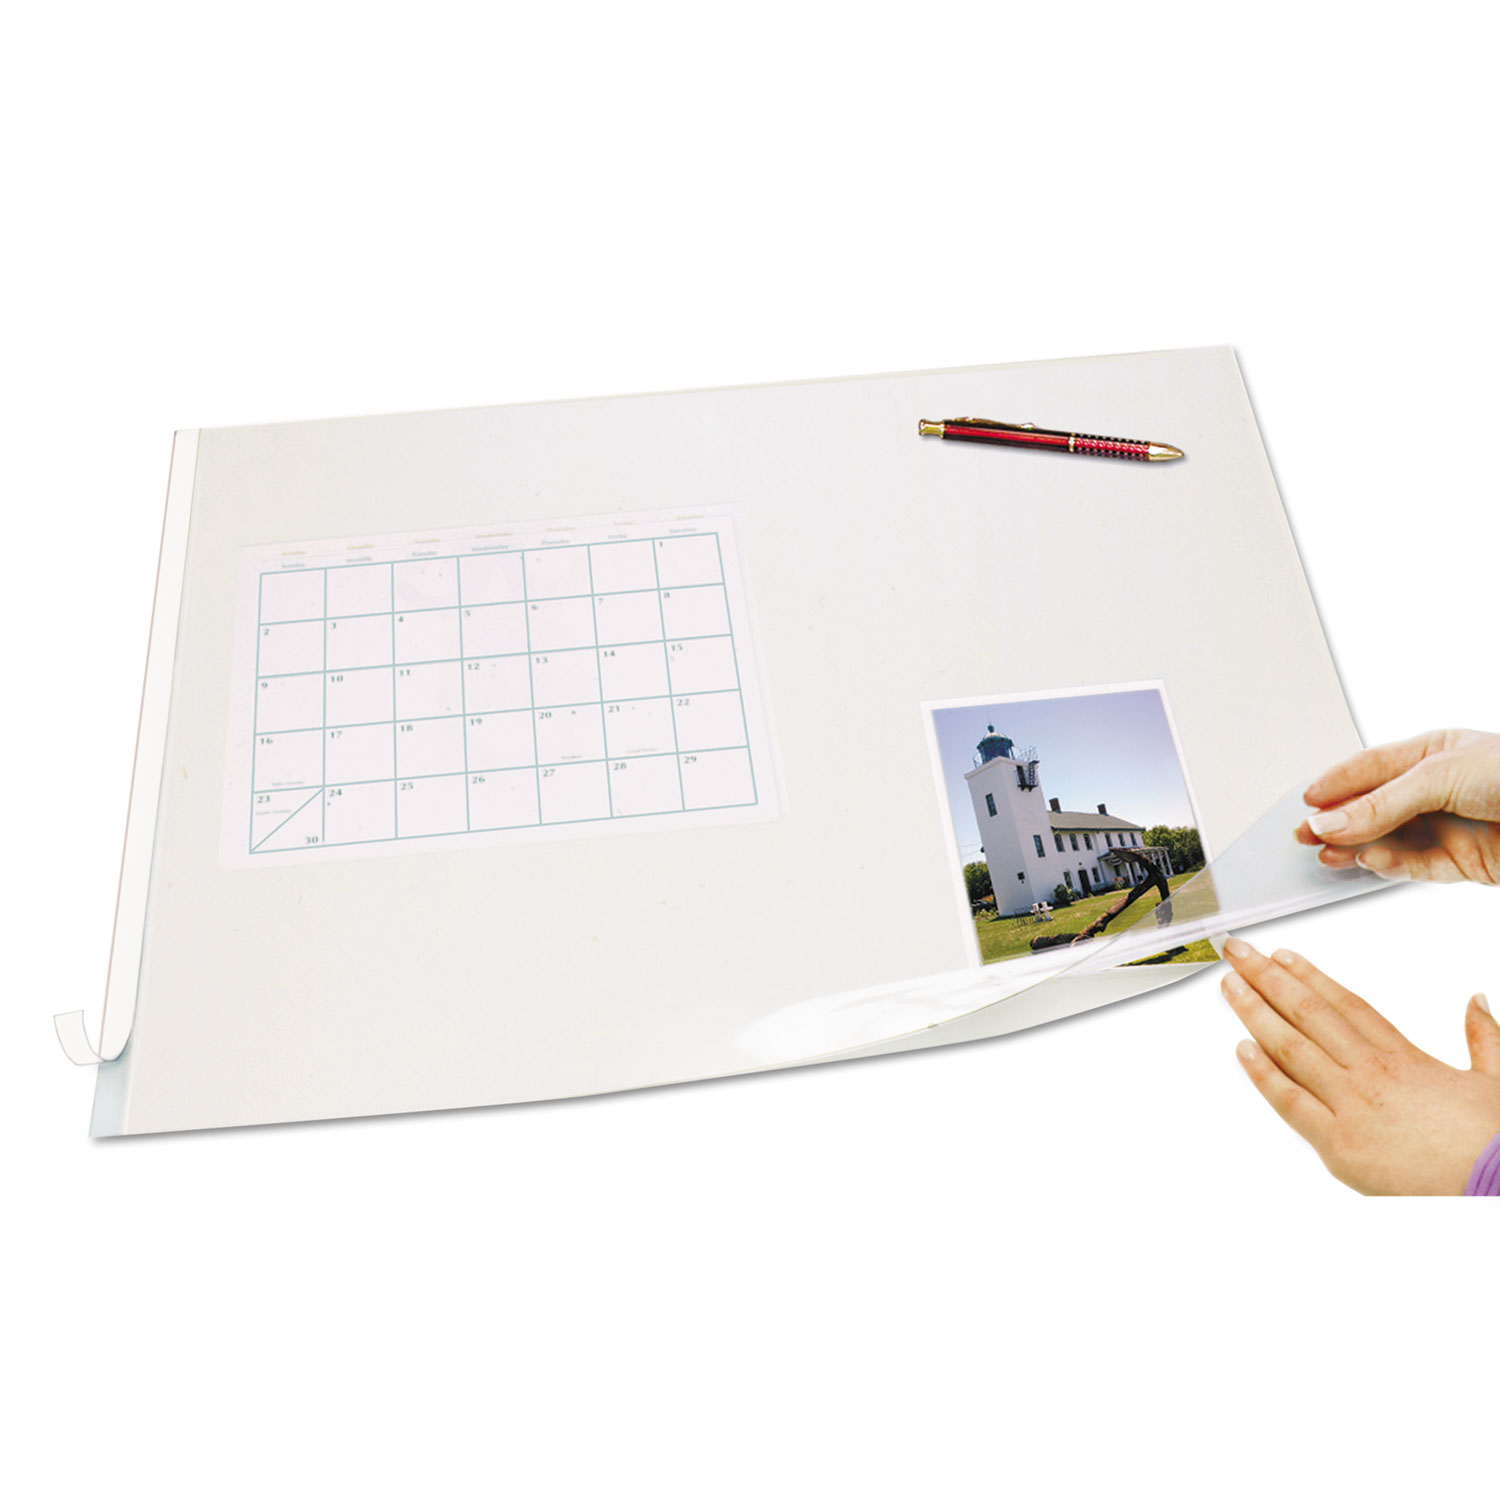 Browse Second Sight Clear Plastic Desk Protector And Other